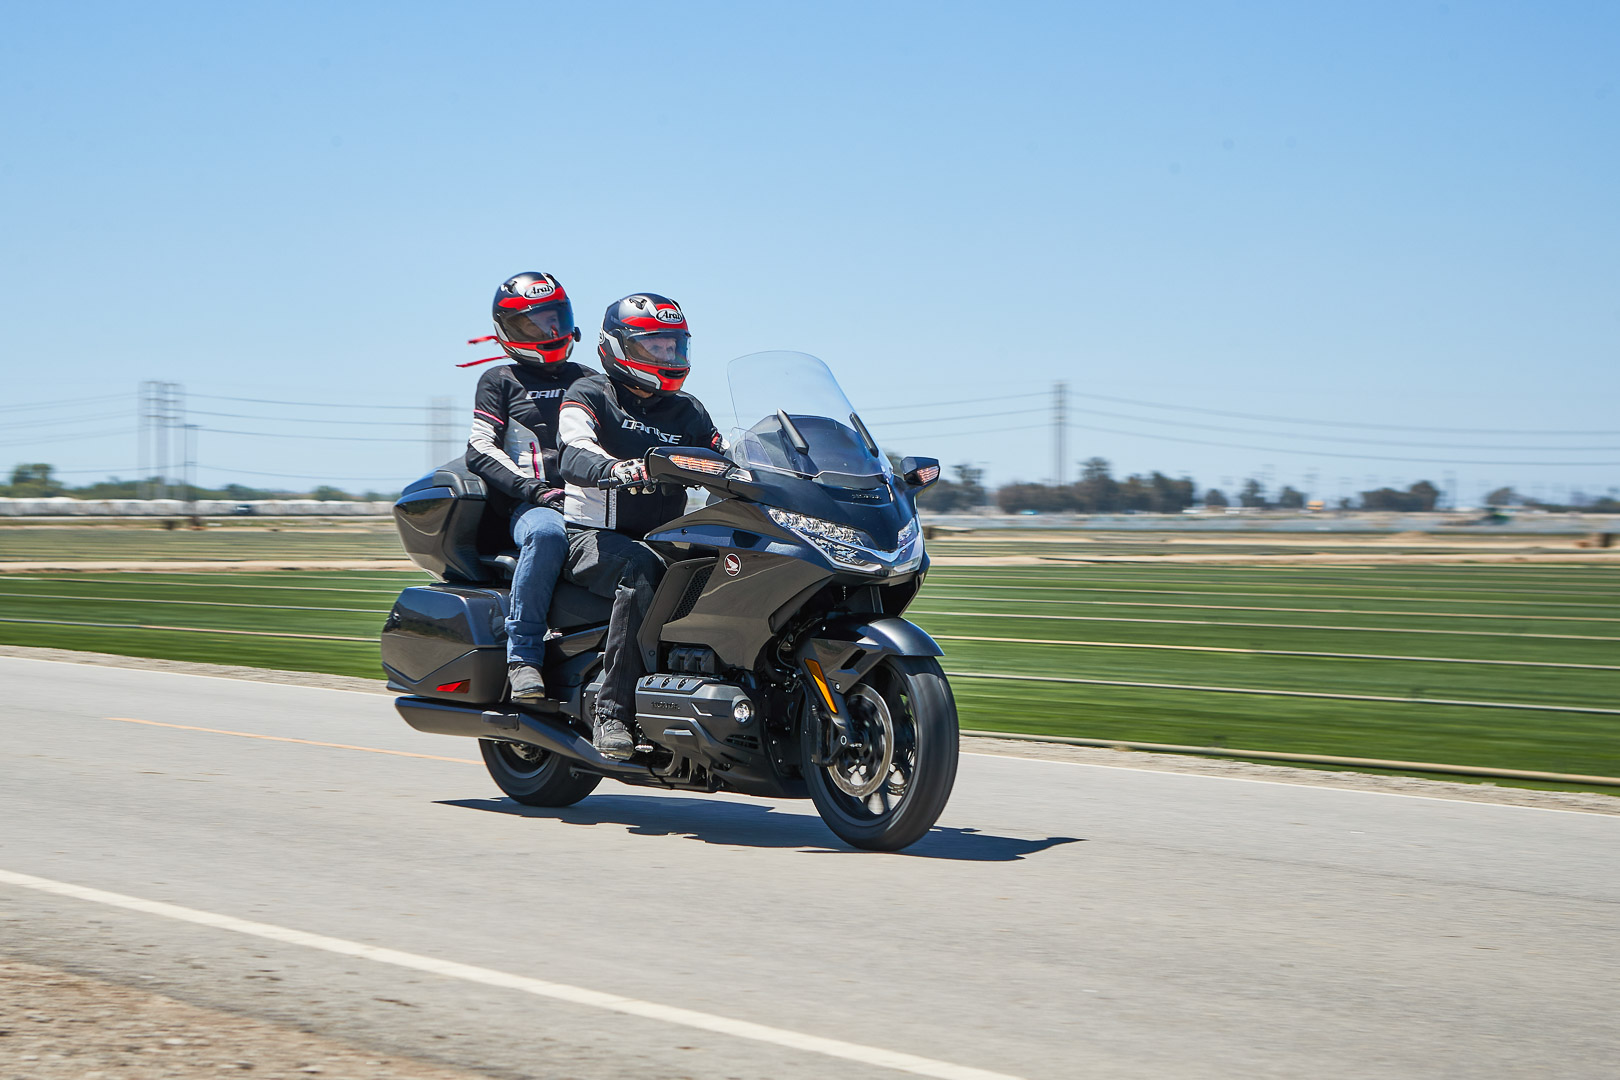 2021 Honda Gold Wing Tour DCT Review: Touring Motorcycle Test